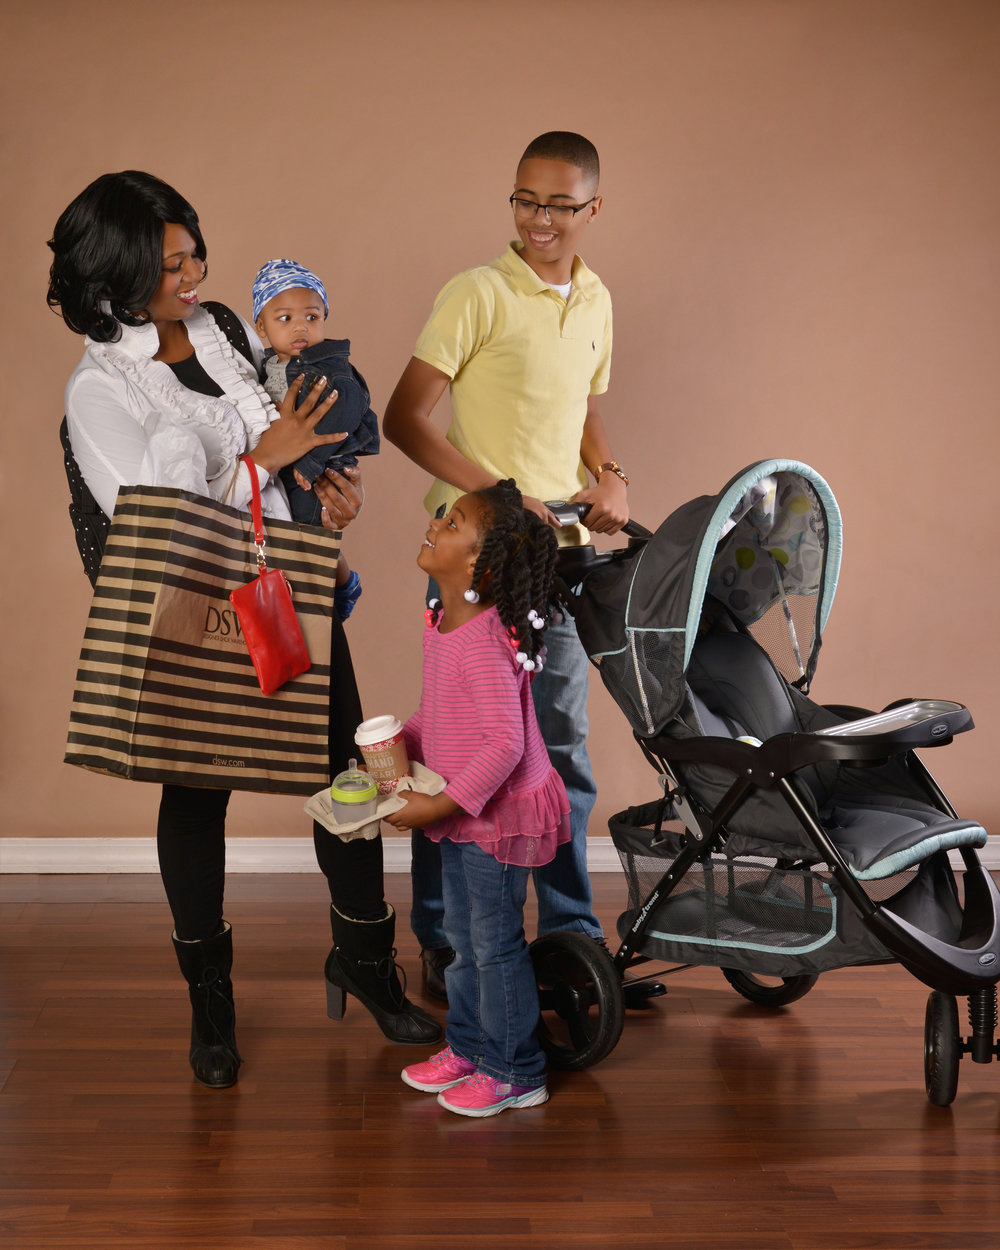 LUX Baby Founder/CEO Lisa Hyche, along with three children, Meciah, London and baby Myles.